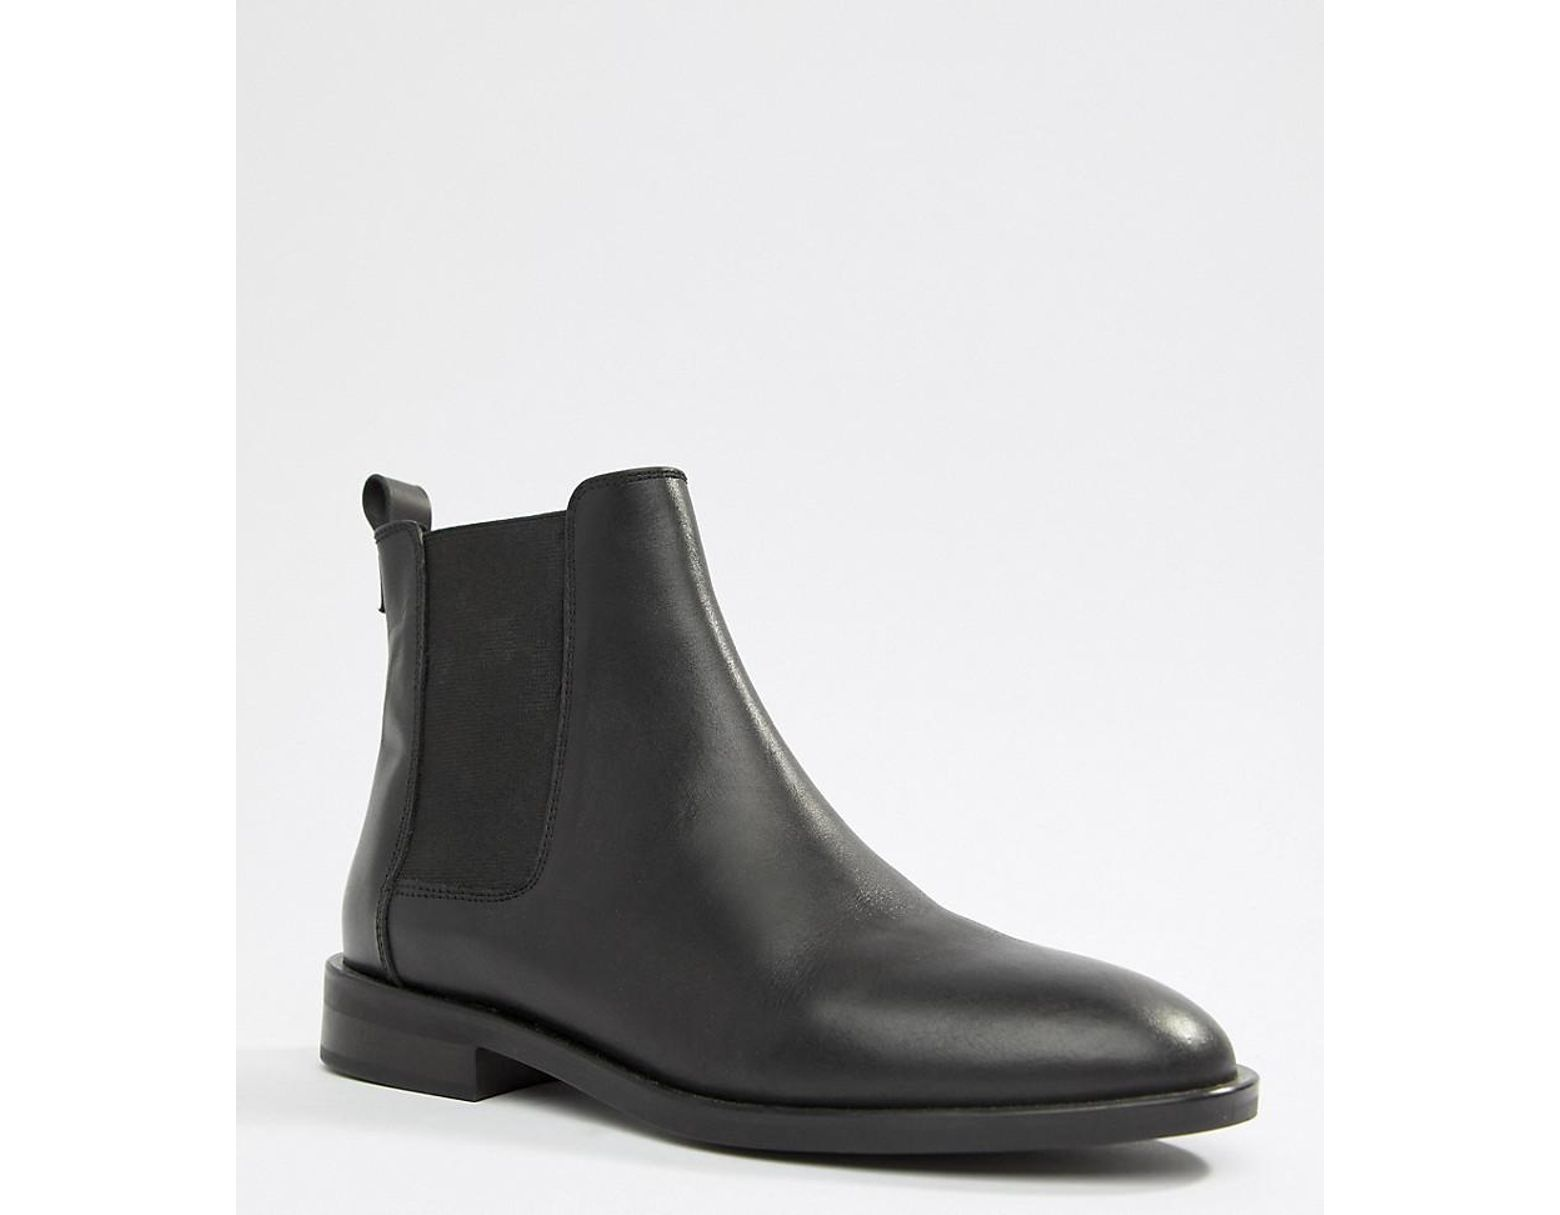 842d3d21737 ASOS Aura Leather Chelsea Ankle Boots in Black - Lyst